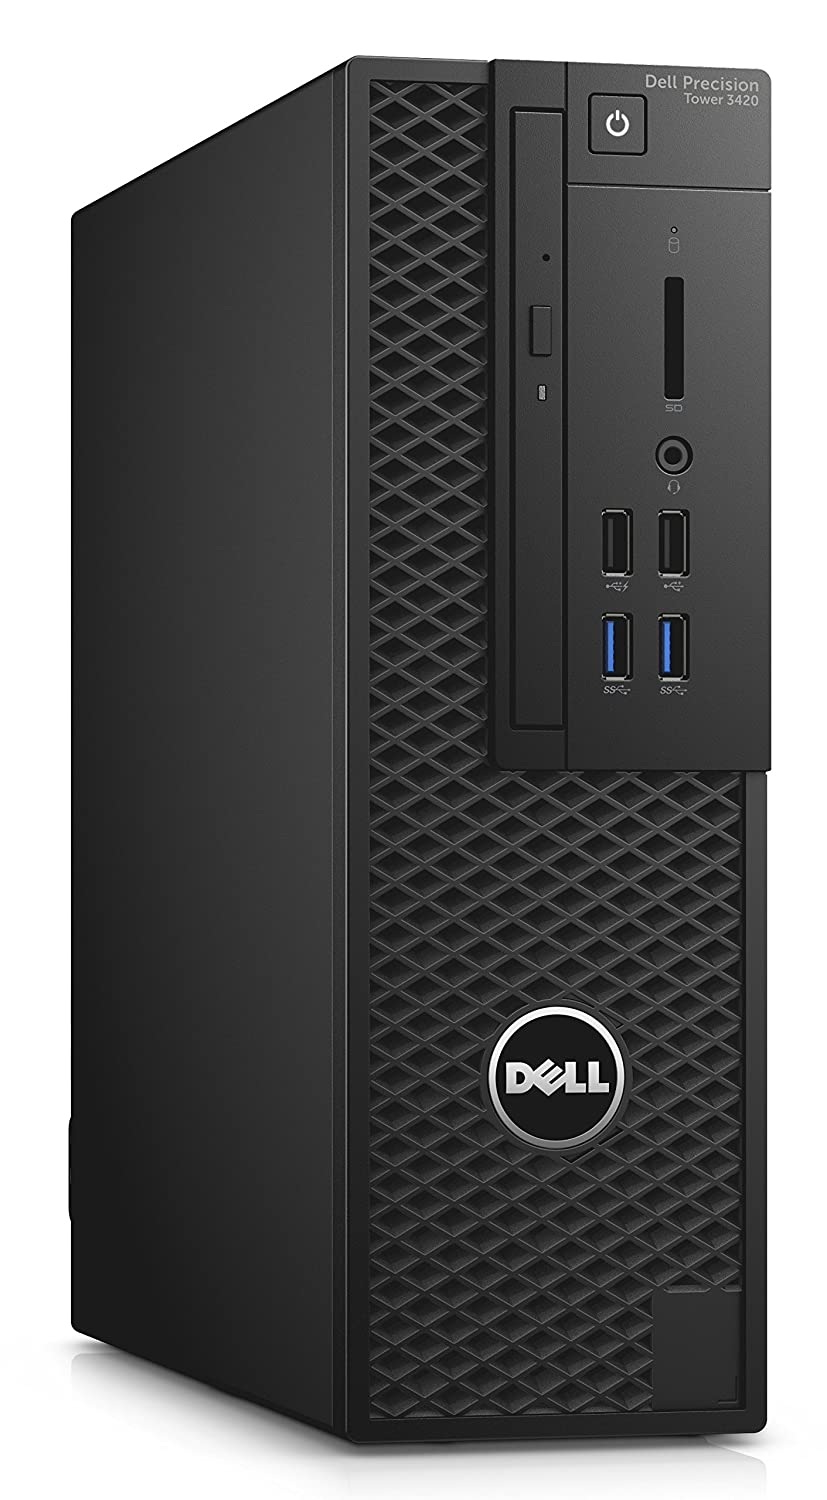 Dell Precision T3420 - Workstation - Core i7 3,6 GHz - RAM: 8 GB DDR4 - HDD: 256 GB - HD 600 NVIDIA Quadro P600